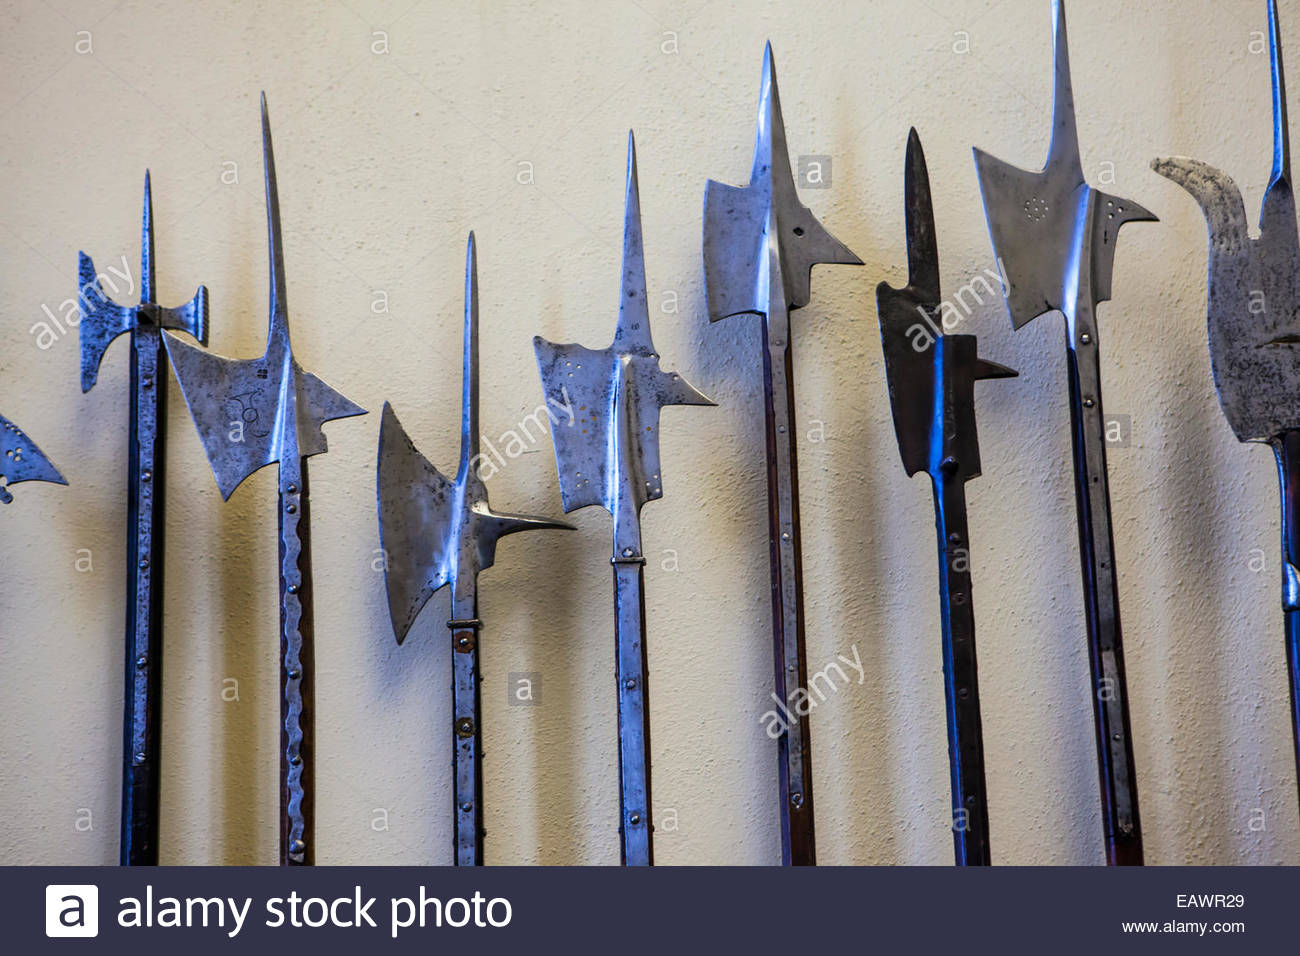 Polearm weapons used by infantry in Medieval Europe on display at the Philadelphia Museum of Art. - Stock Image